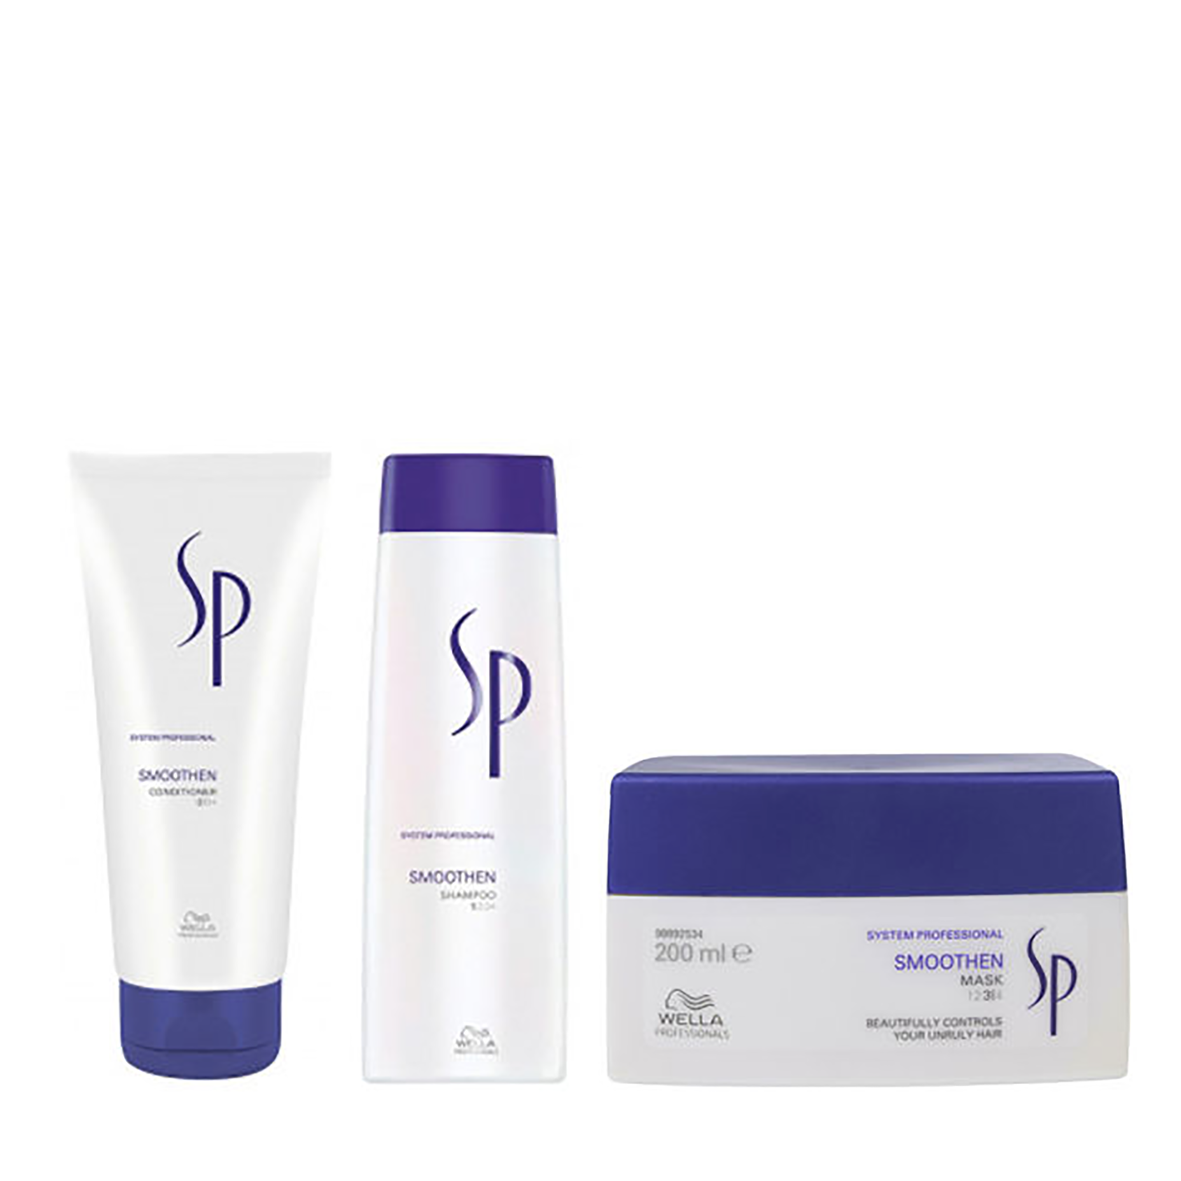 04 Linea SP-Wella Smoothen - Kit Completo